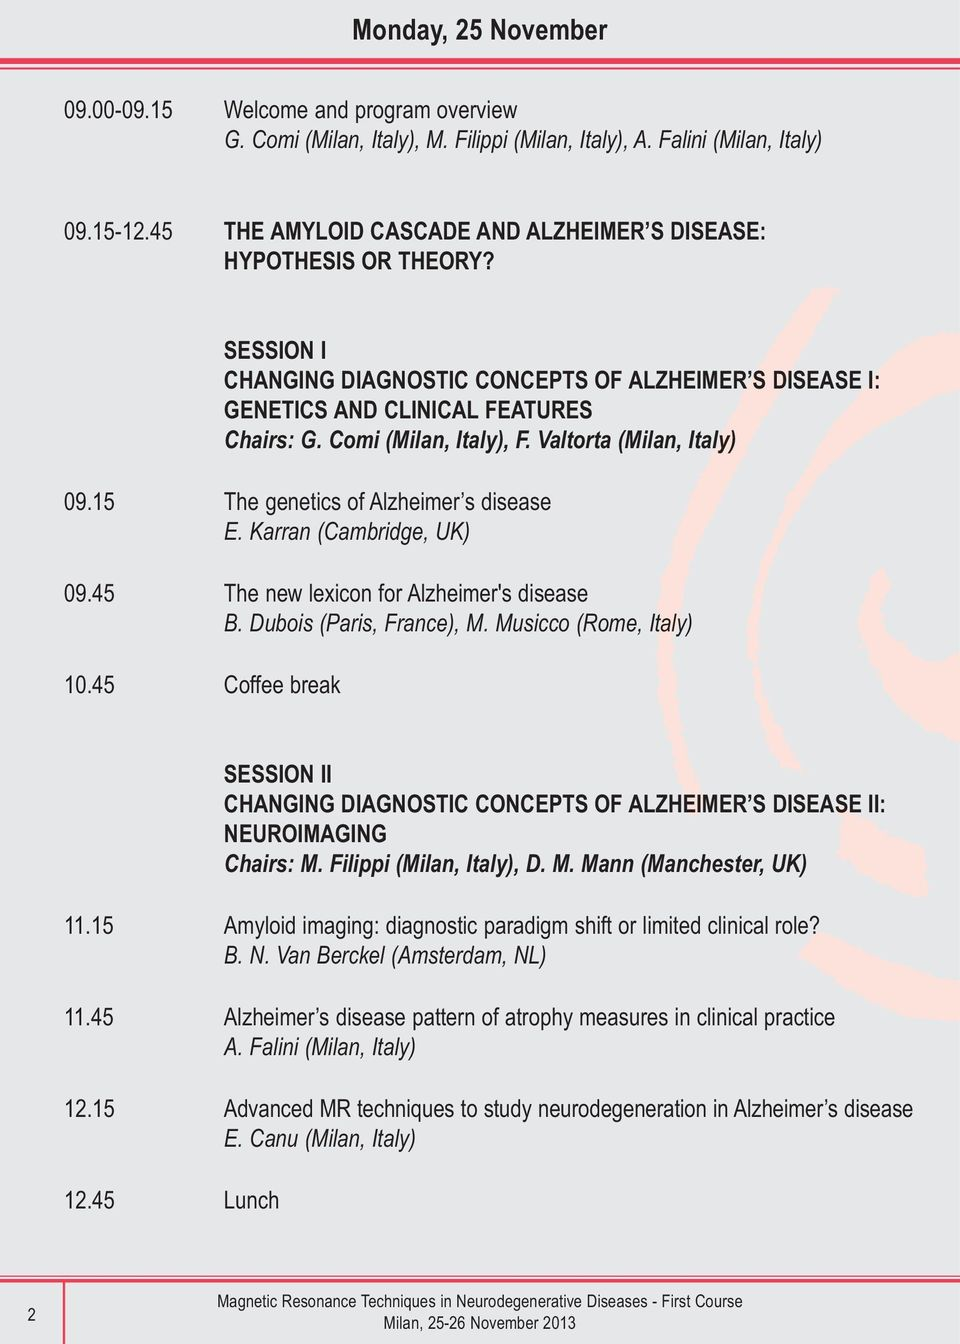 Valtorta (Milan, Italy) 09.15 The genetics of Alzheimer s disease E. Karran (Cambridge, UK) 09.45 The new lexicon for Alzheimer's disease B. Dubois (Paris, France), M. Musicco (Rome, Italy) 10.